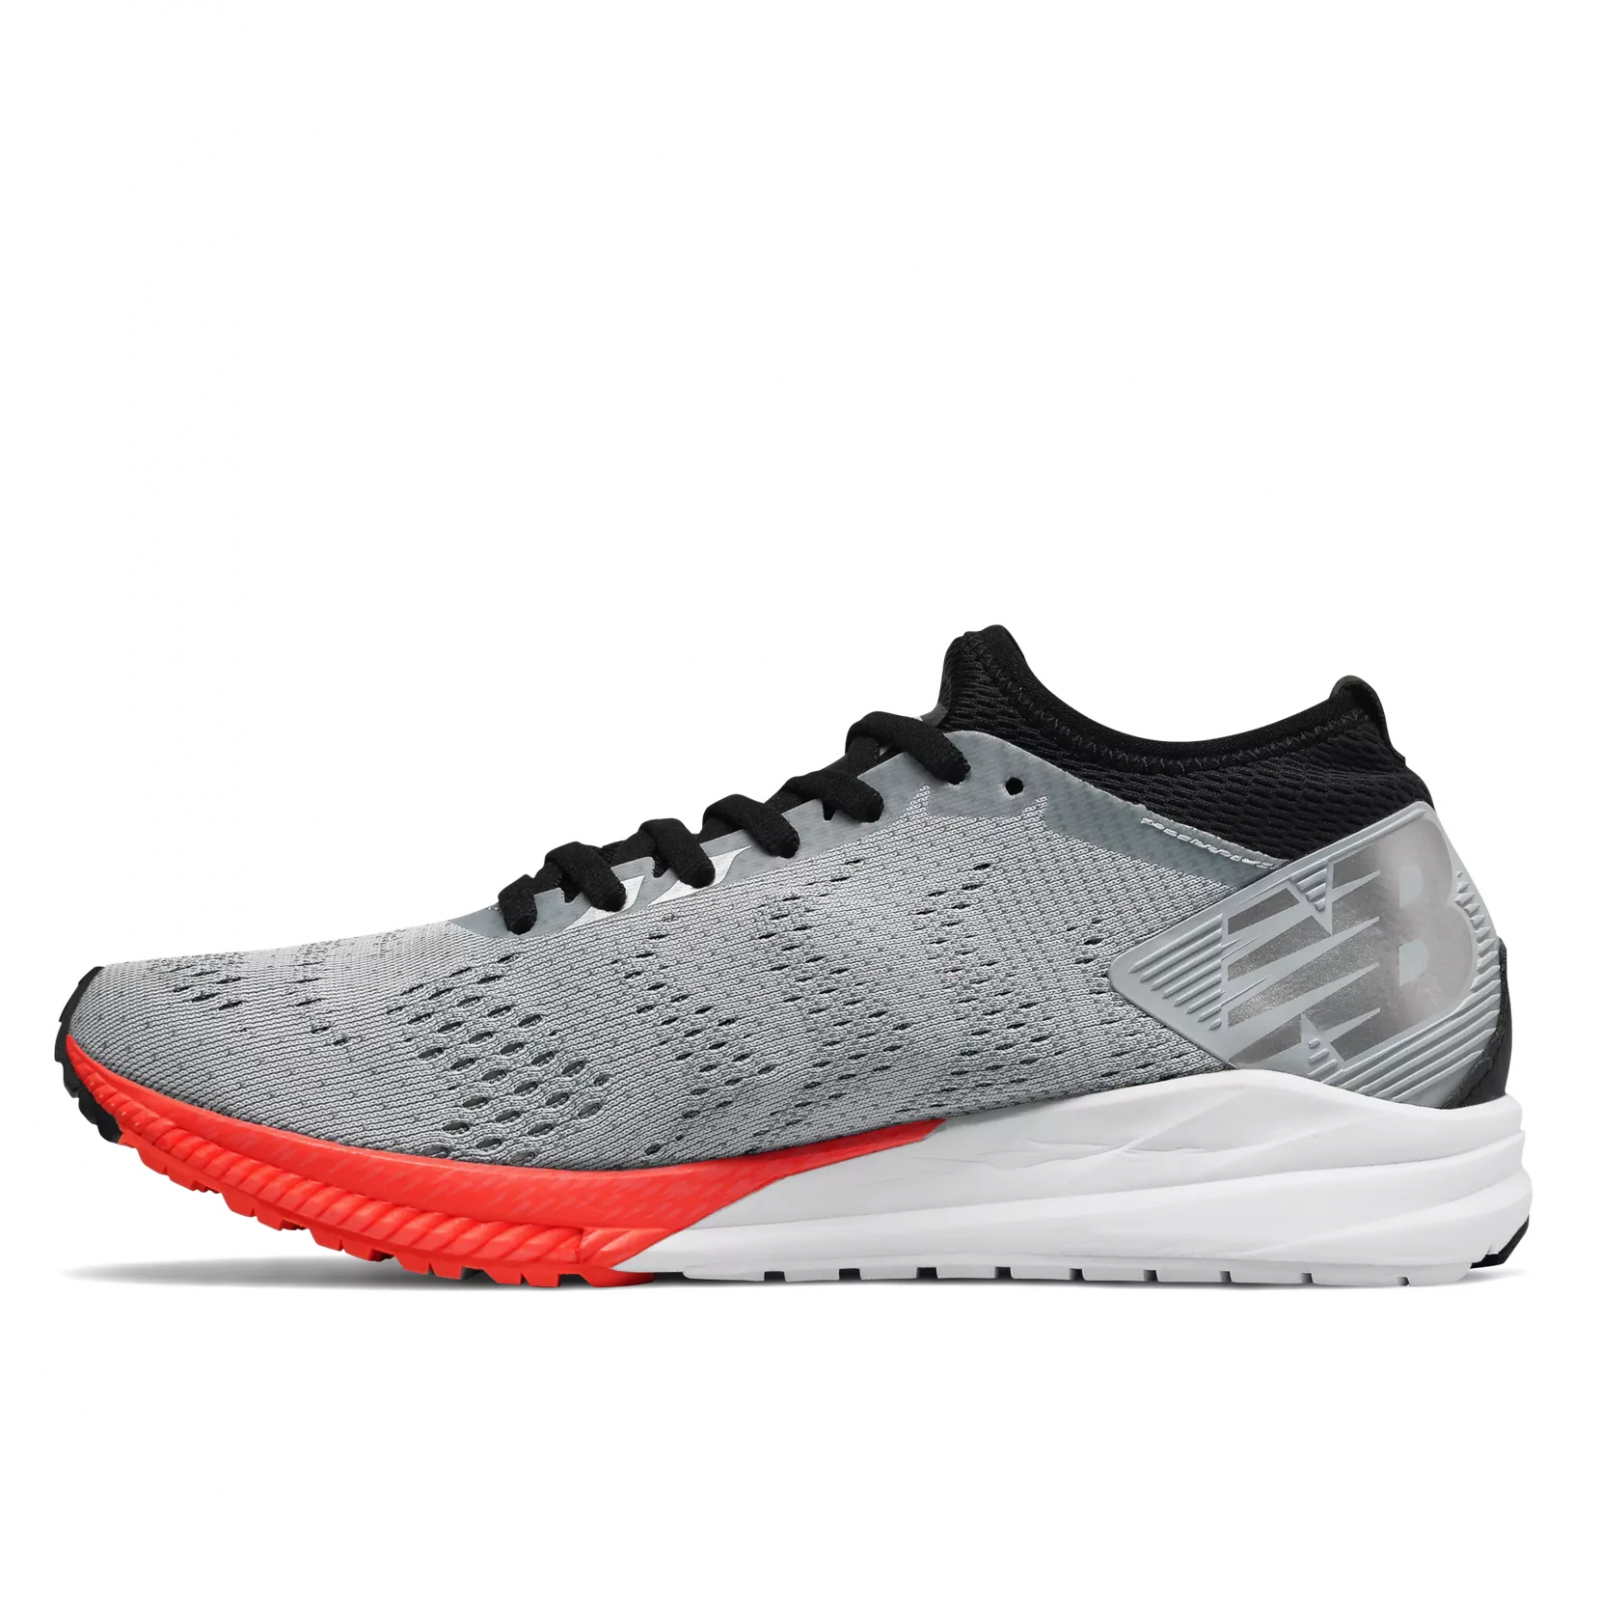 d4128ba791fde WFCIMGPB-2. Published 14th August 2018 at 1659 × 1658 in NEW BALANCE  FUELCELL IMPULSE B WIDTH LADIES